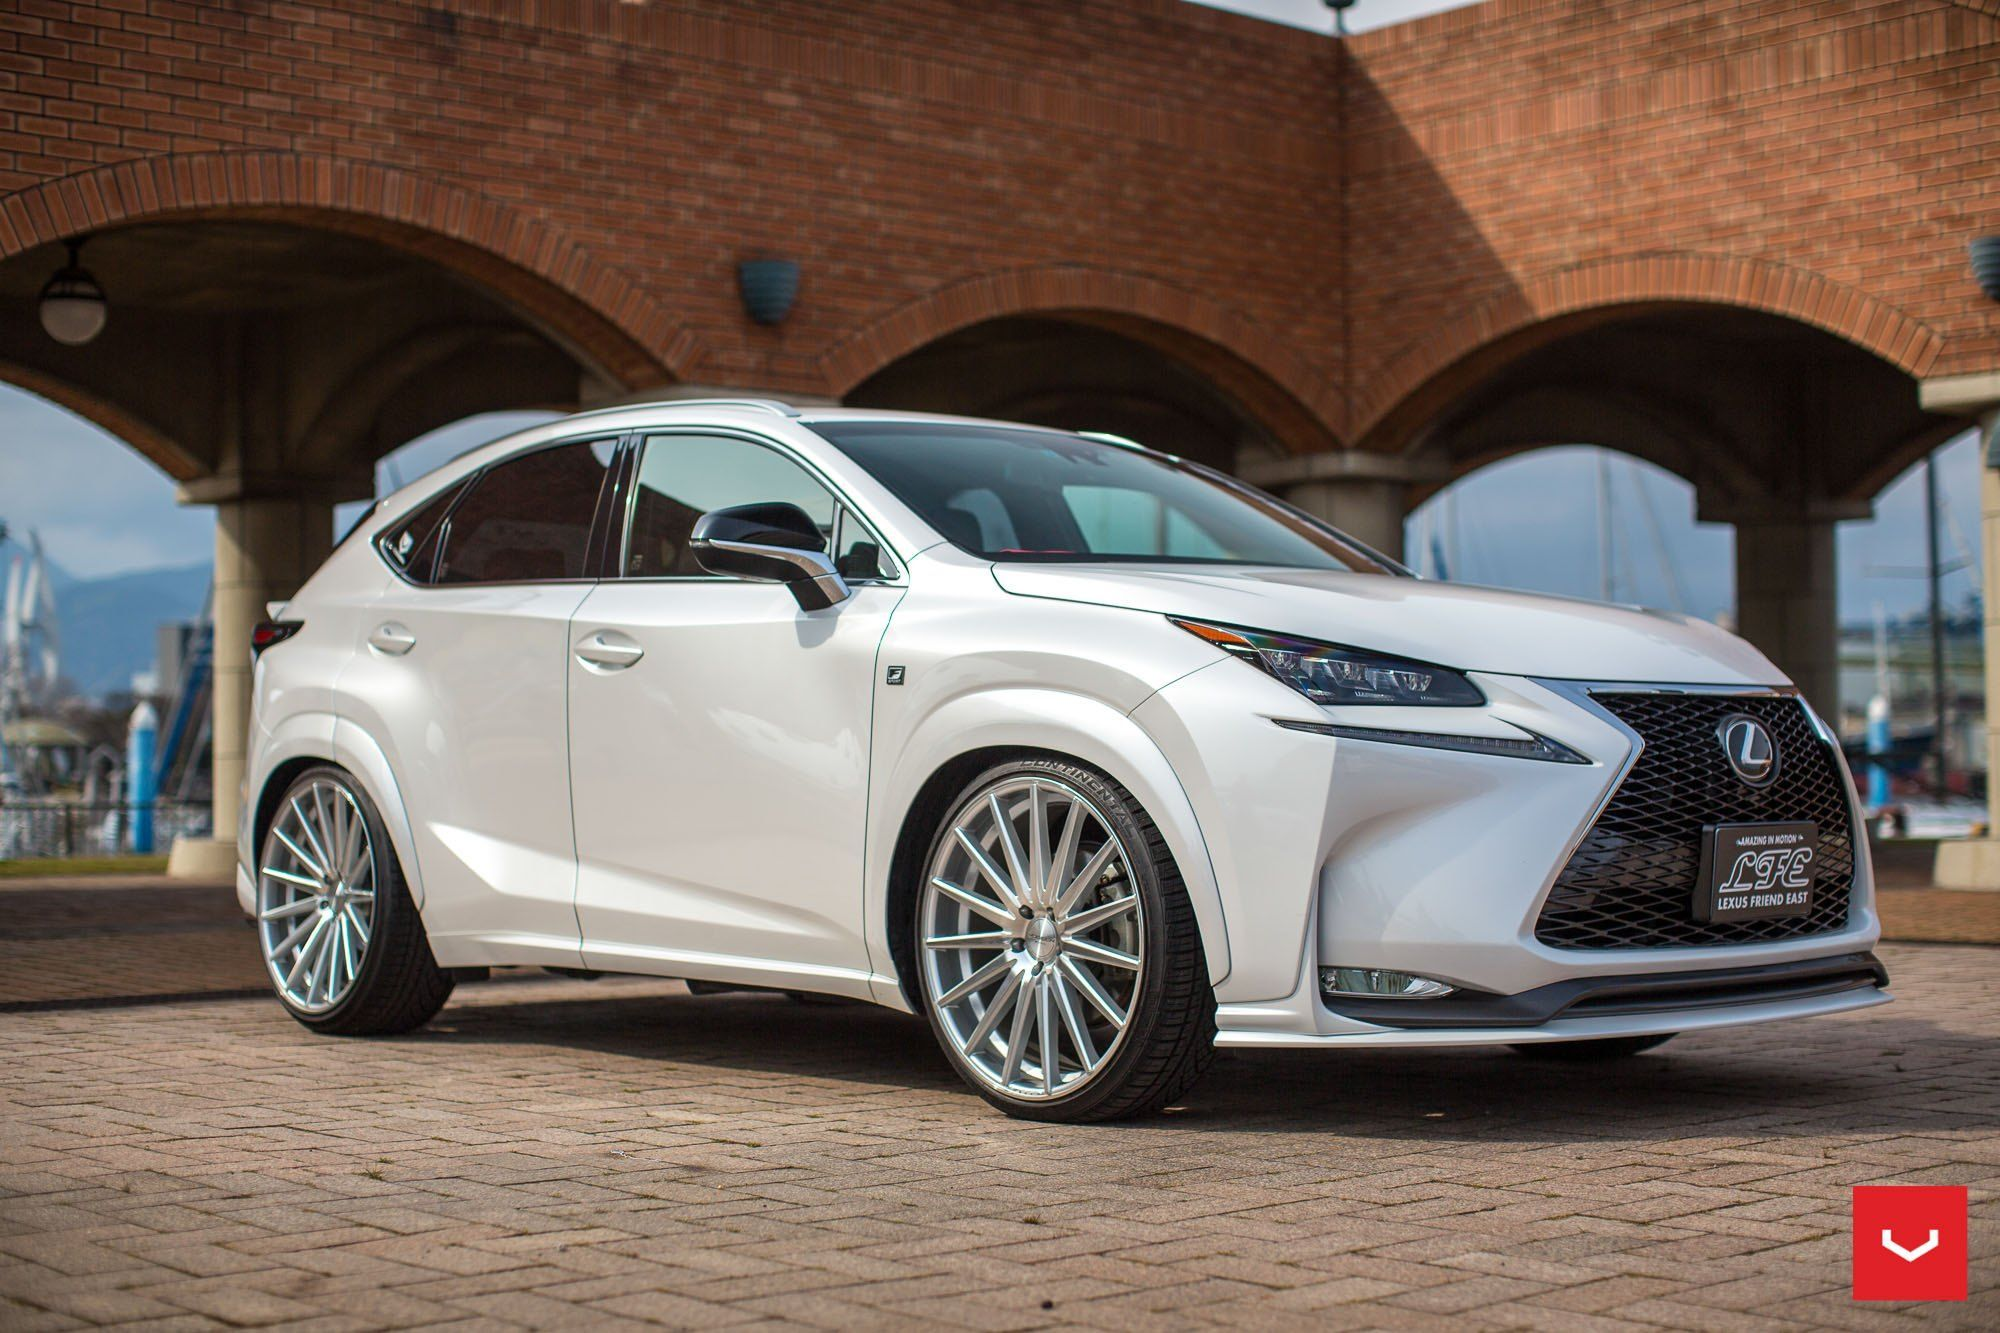 Classy Pearl White Lexus Nx With Lowered Suspension And Vossen Rims In 2020 White Lexus Lexus Lexus Nx 200t